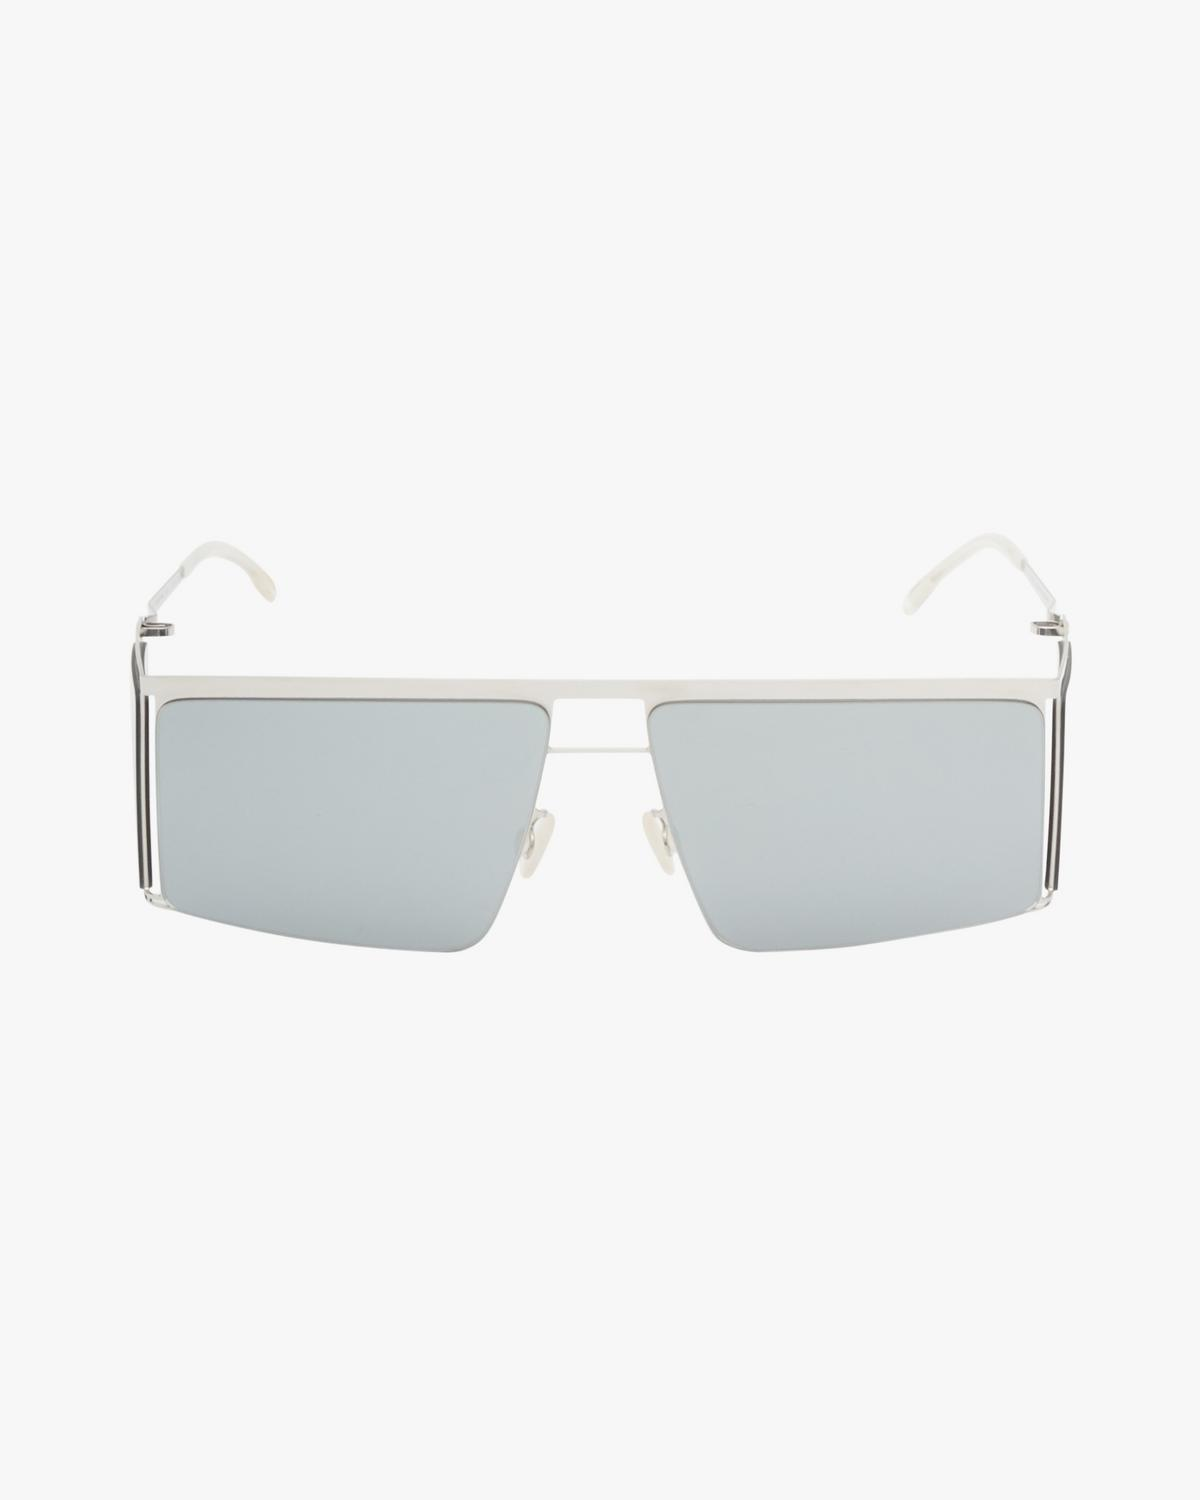 Mykita and Helmut Lang HL001 Sunglasses